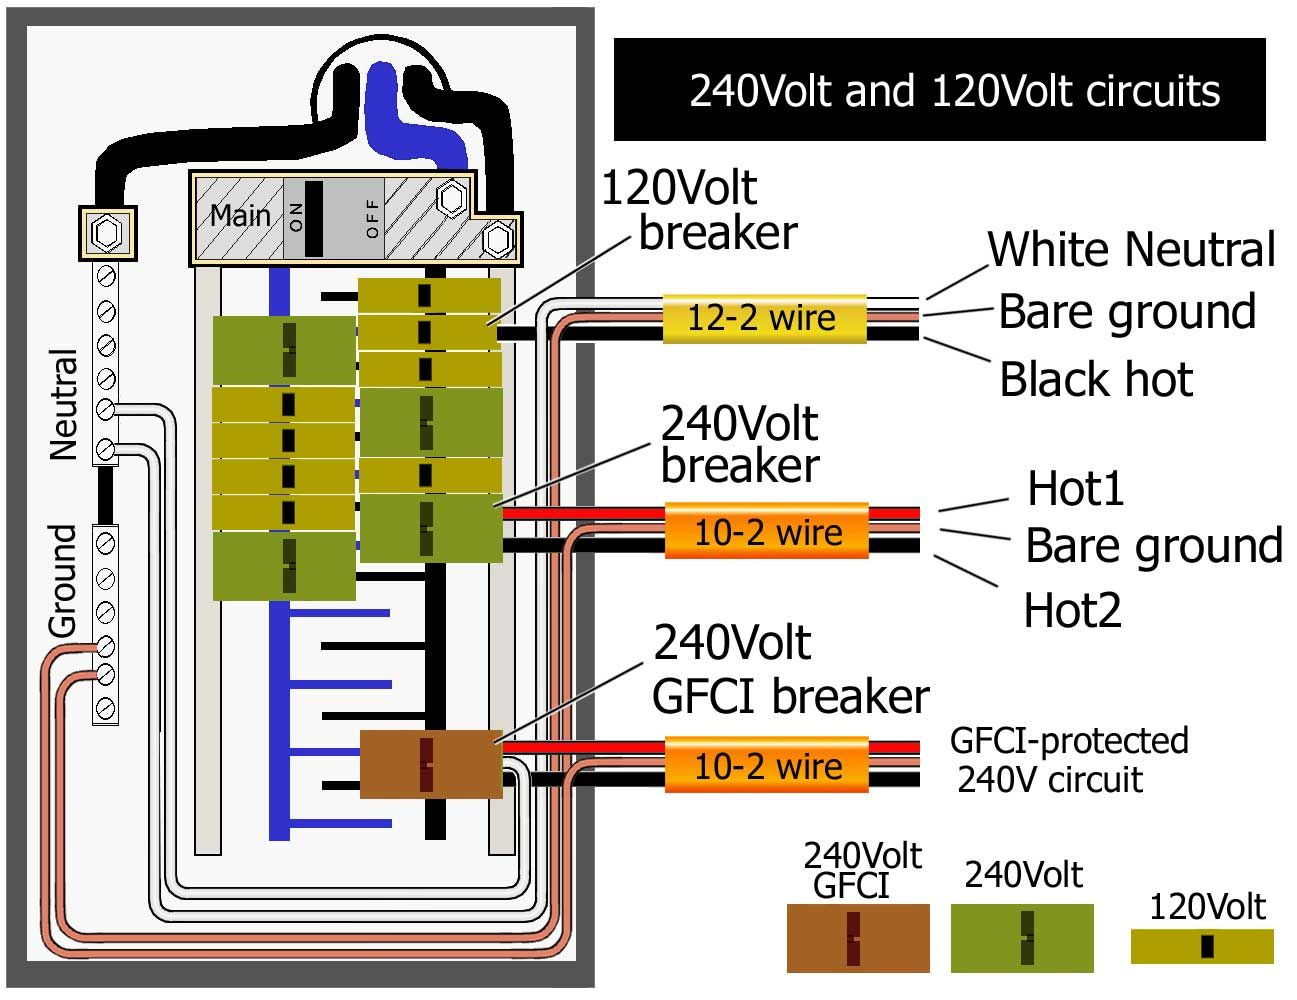 Gfci Outlet Wiring Diagram ElectricalEngineering ECE